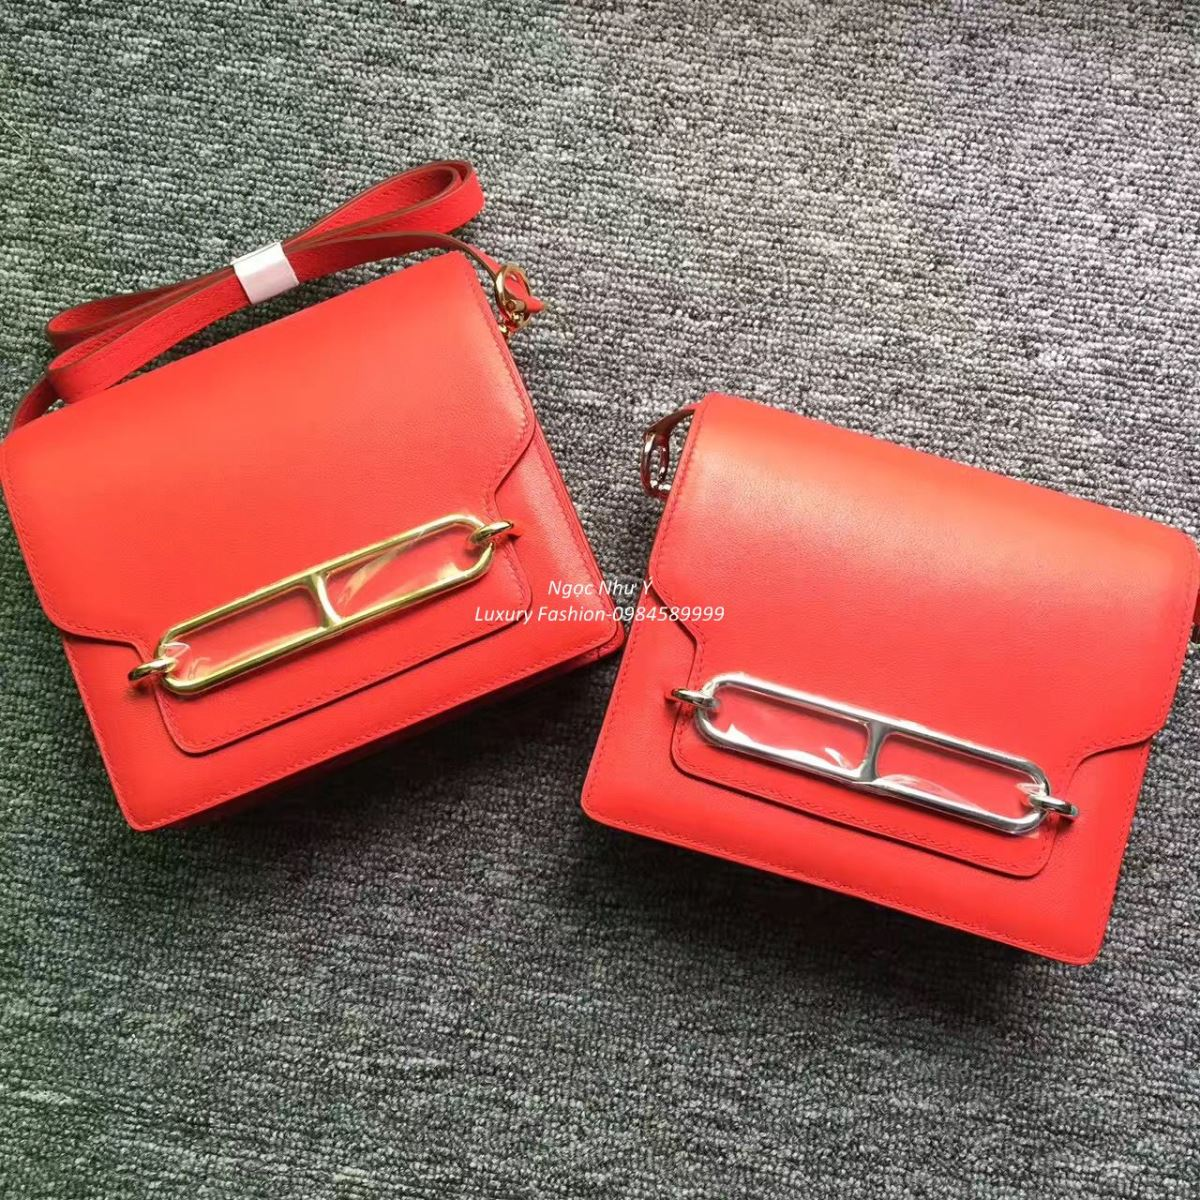 Hermes Roulis Mini 19 Swift Red